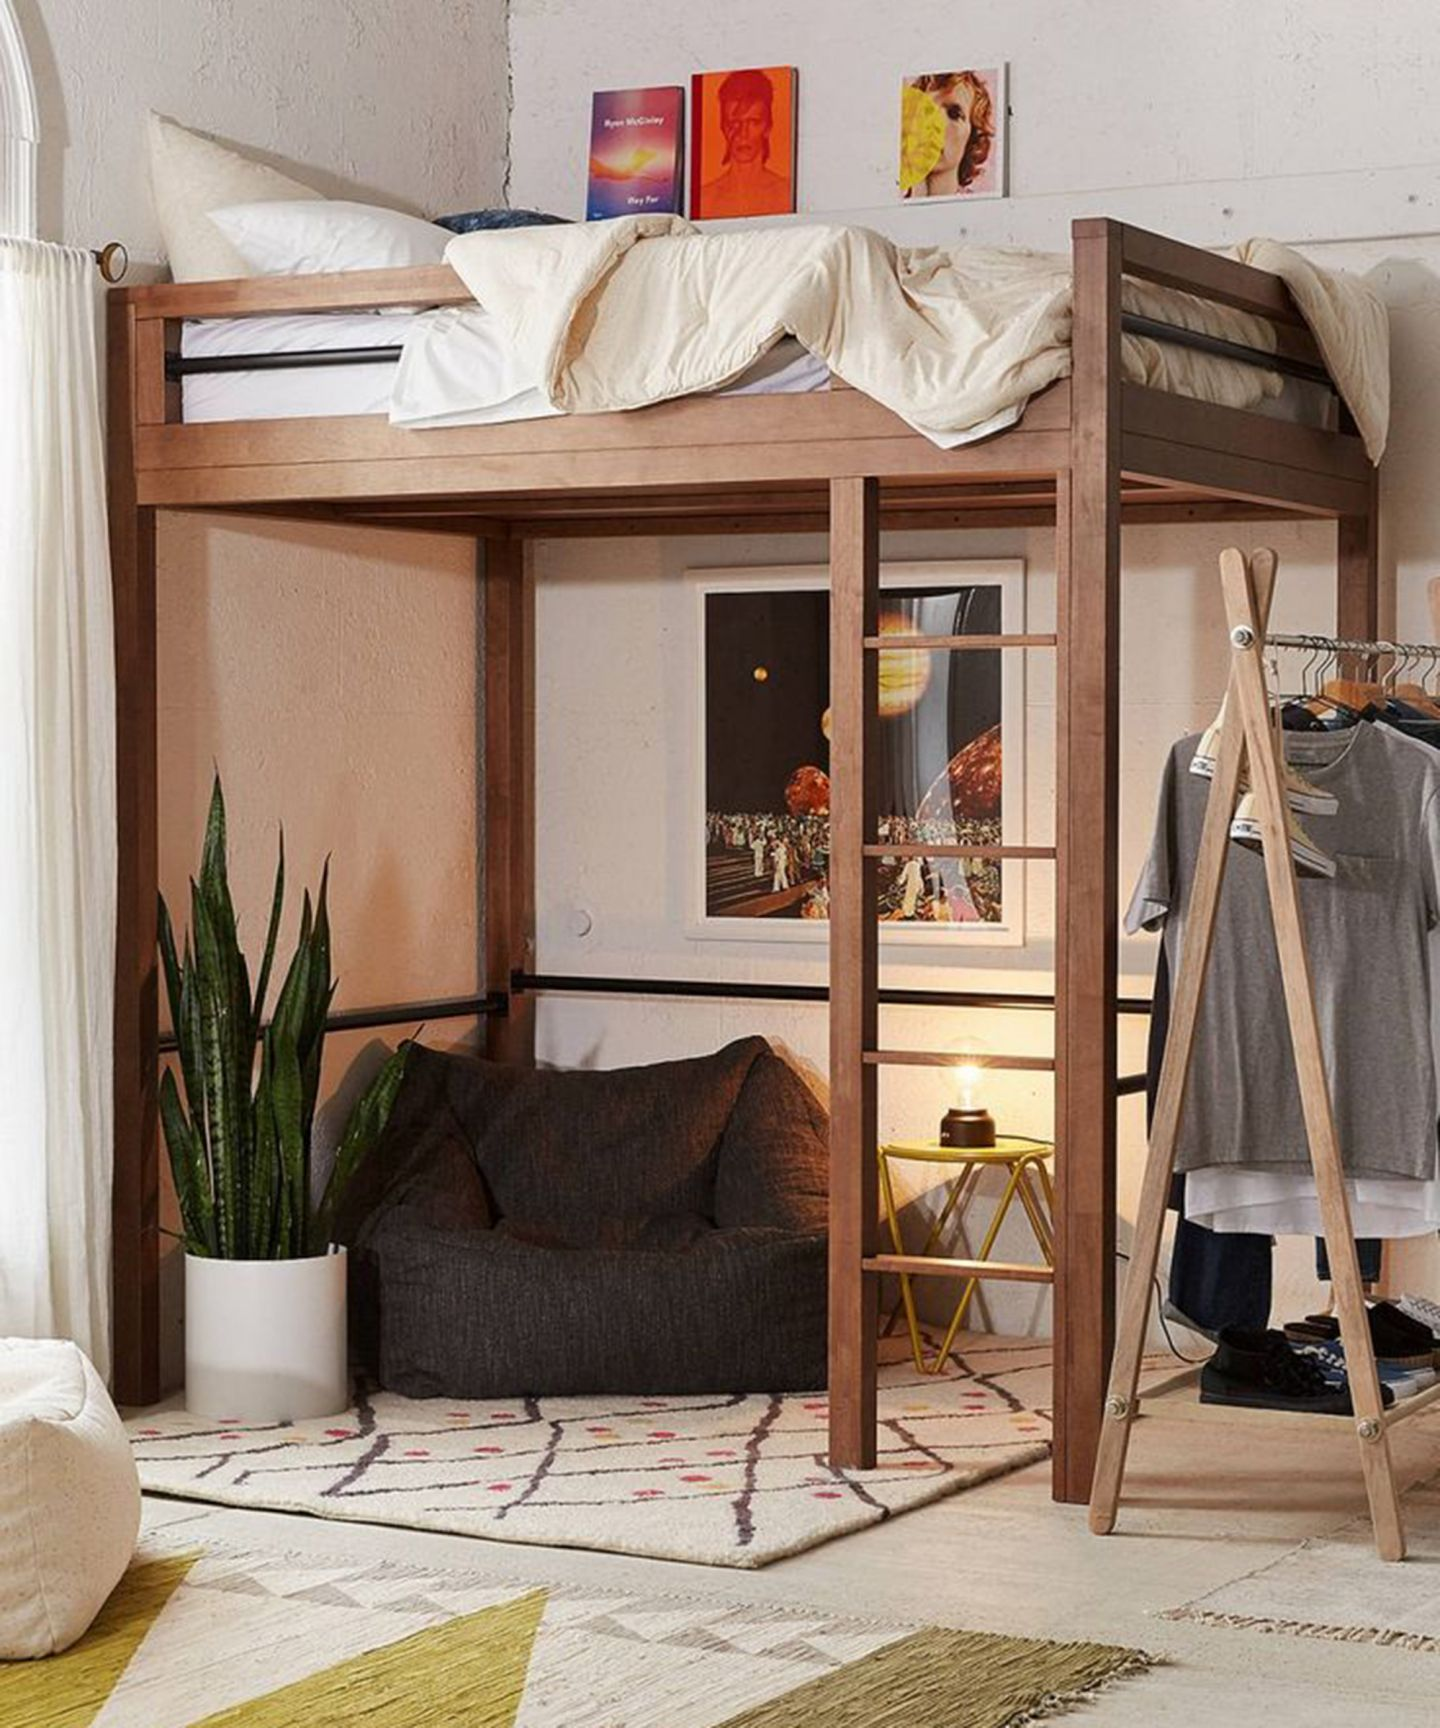 7 Decorating Ideas For Your Grown Up Loft Bed Lofted